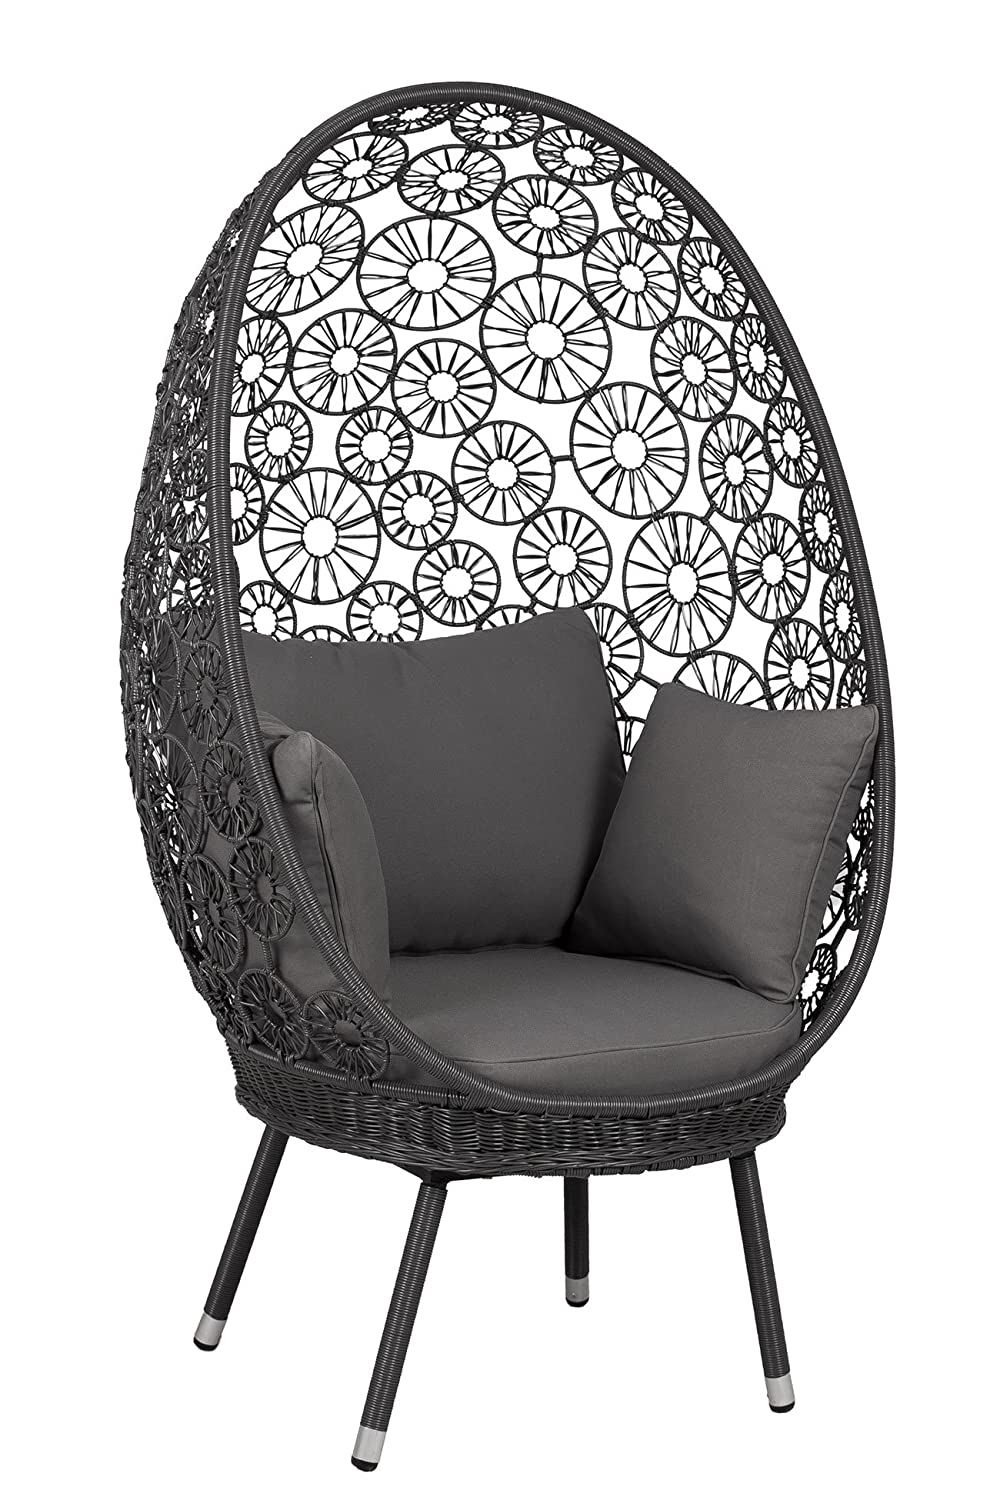 ei sessel geflecht outliv arona korbsessel polyrattan. Black Bedroom Furniture Sets. Home Design Ideas